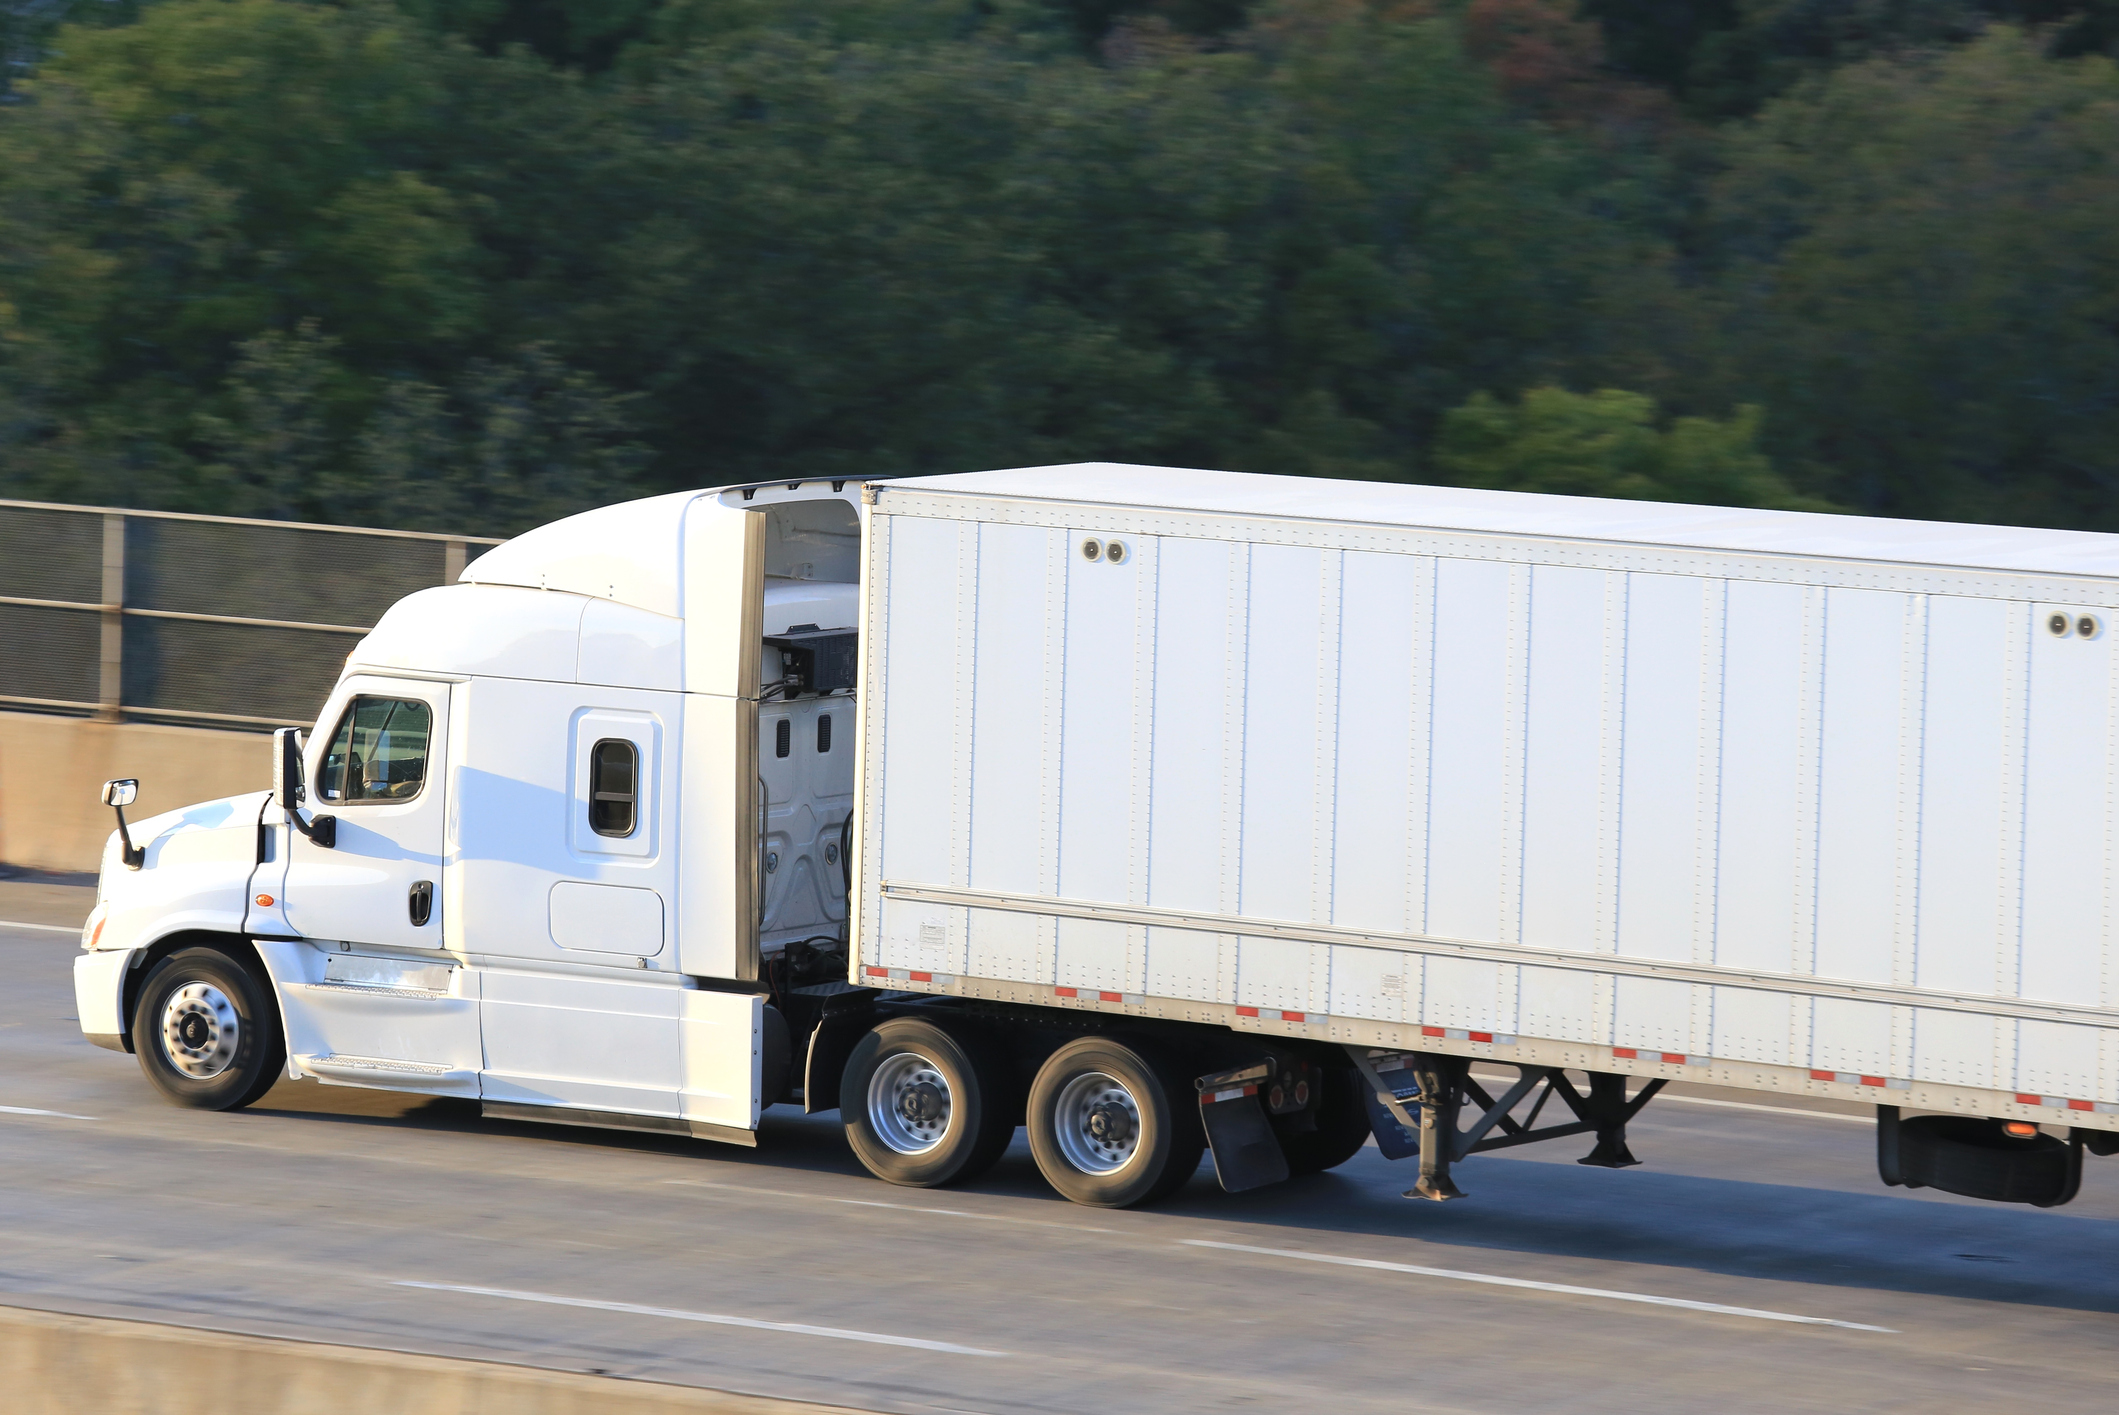 Side view of a moving semi truck on a highway bridge